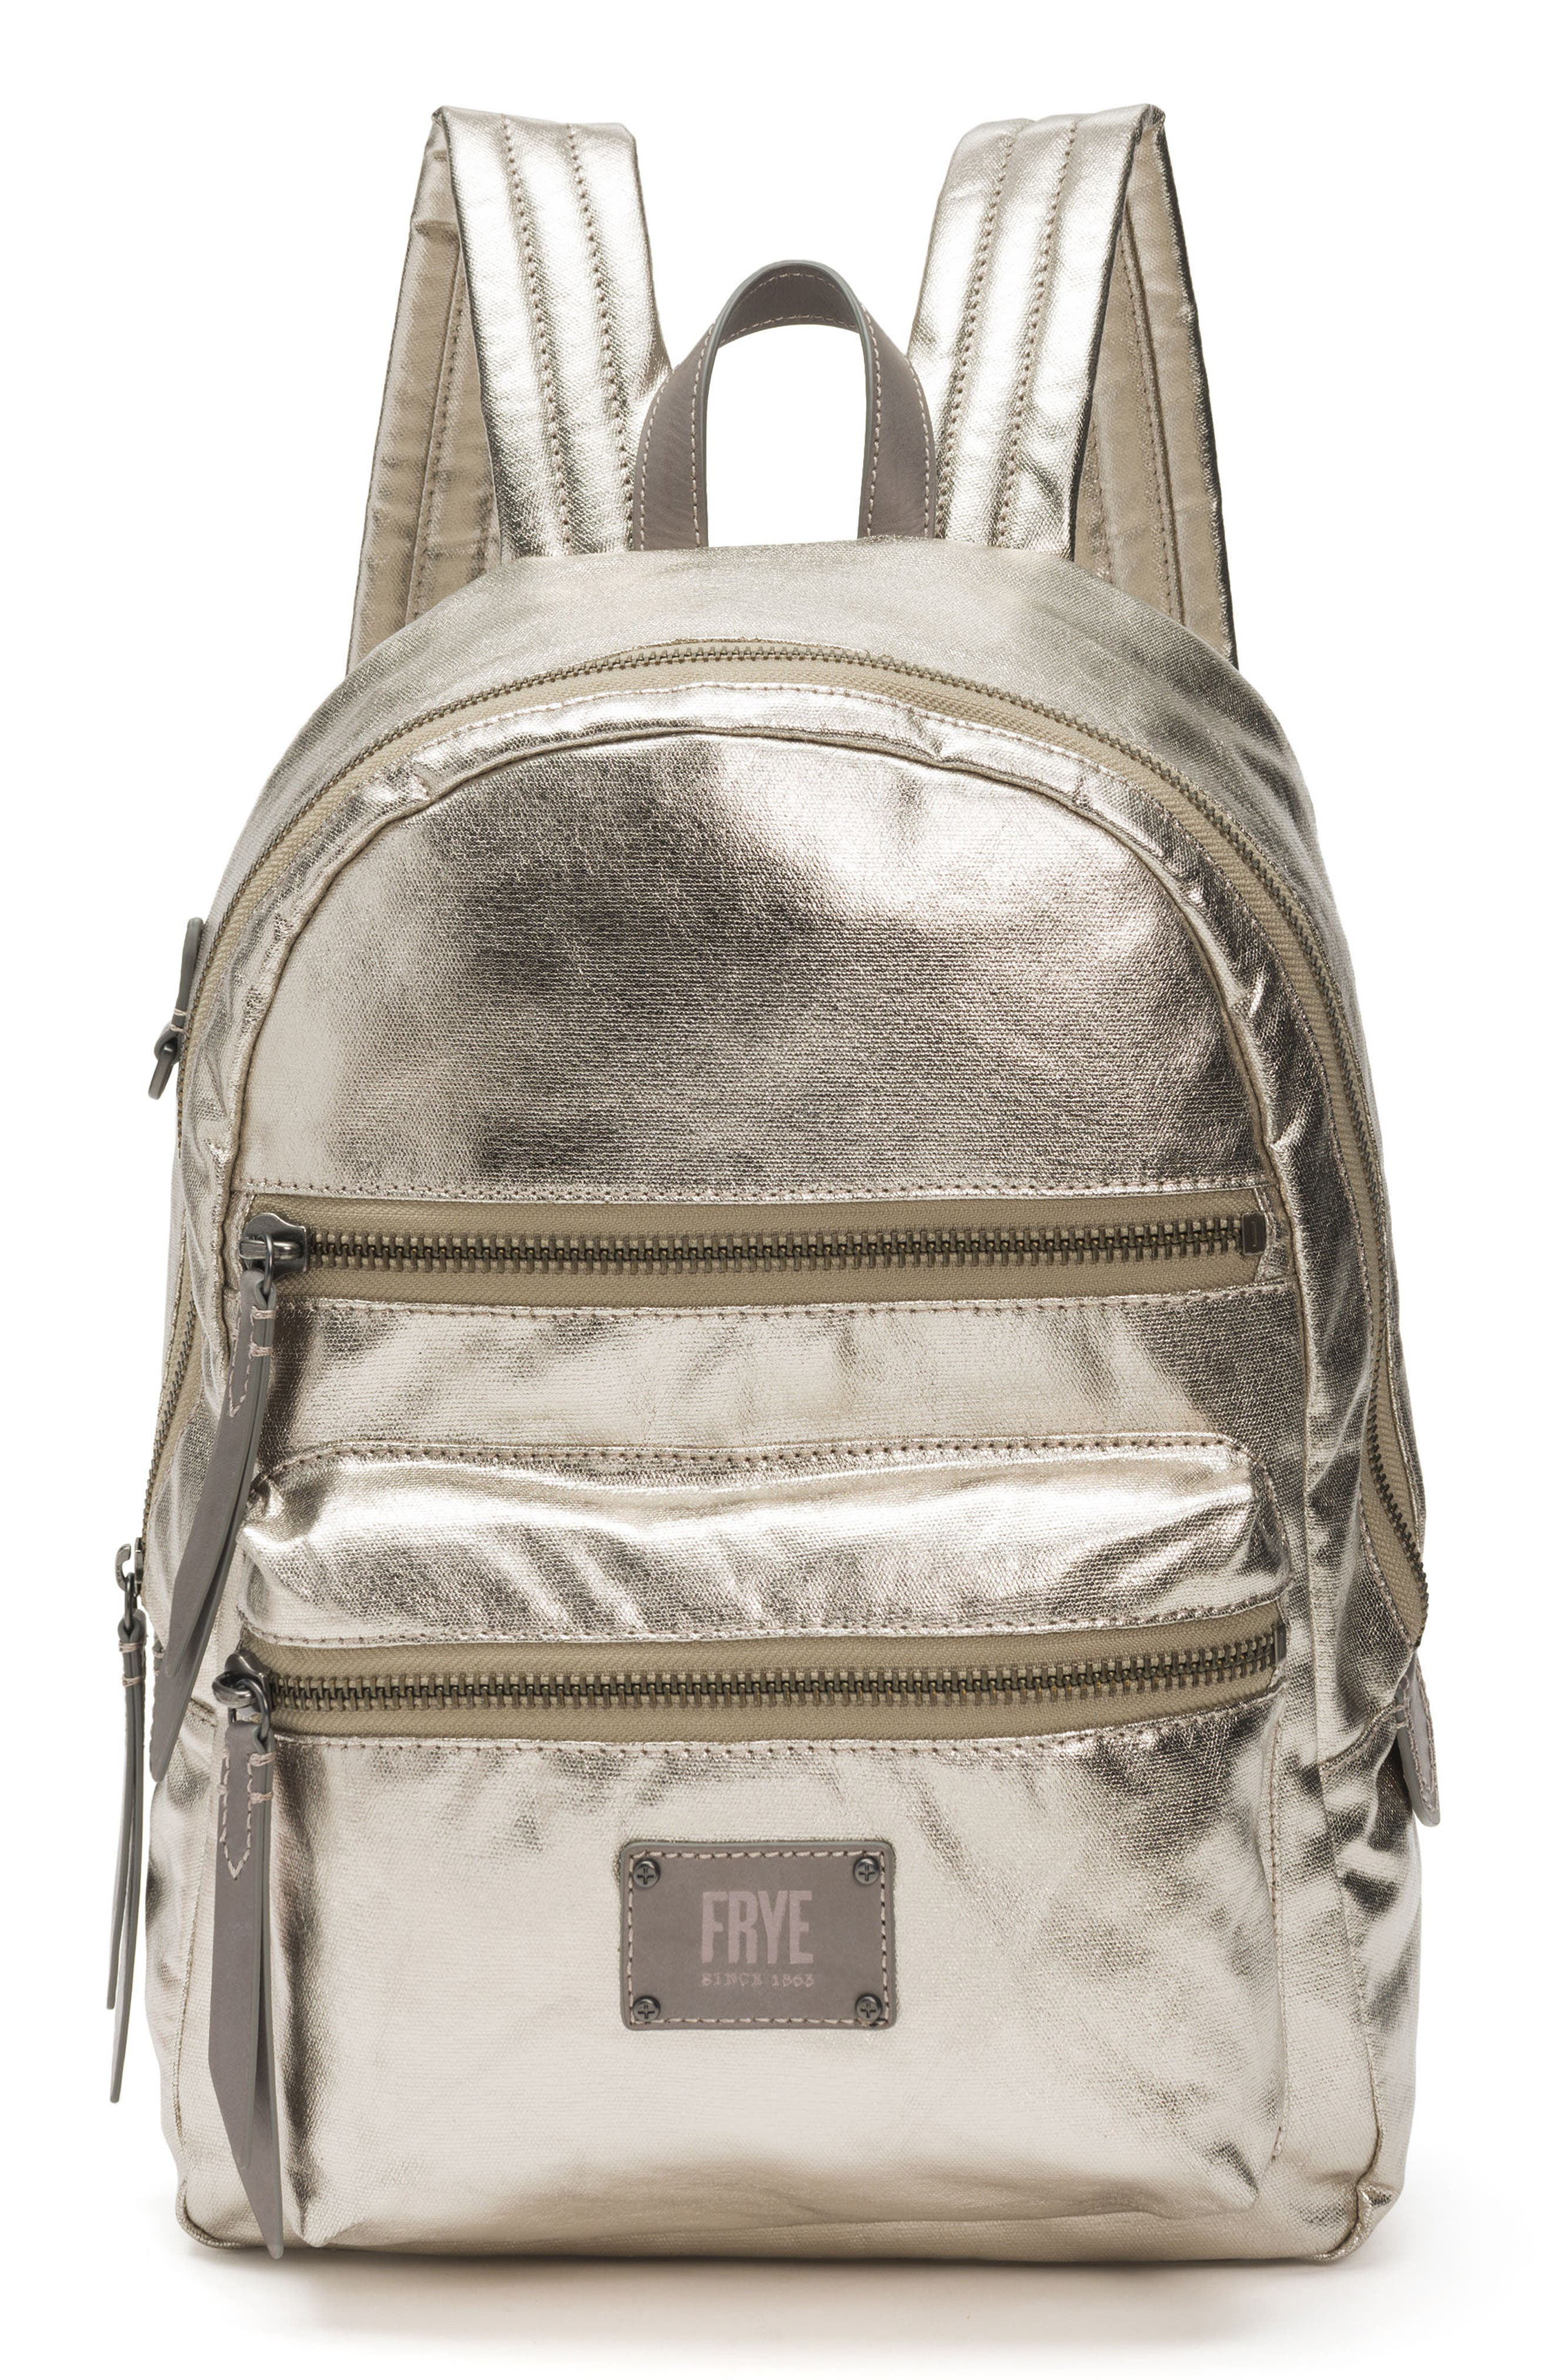 Ivy Metallic Nylon Backpack,                             Main thumbnail 1, color,                             Pewter